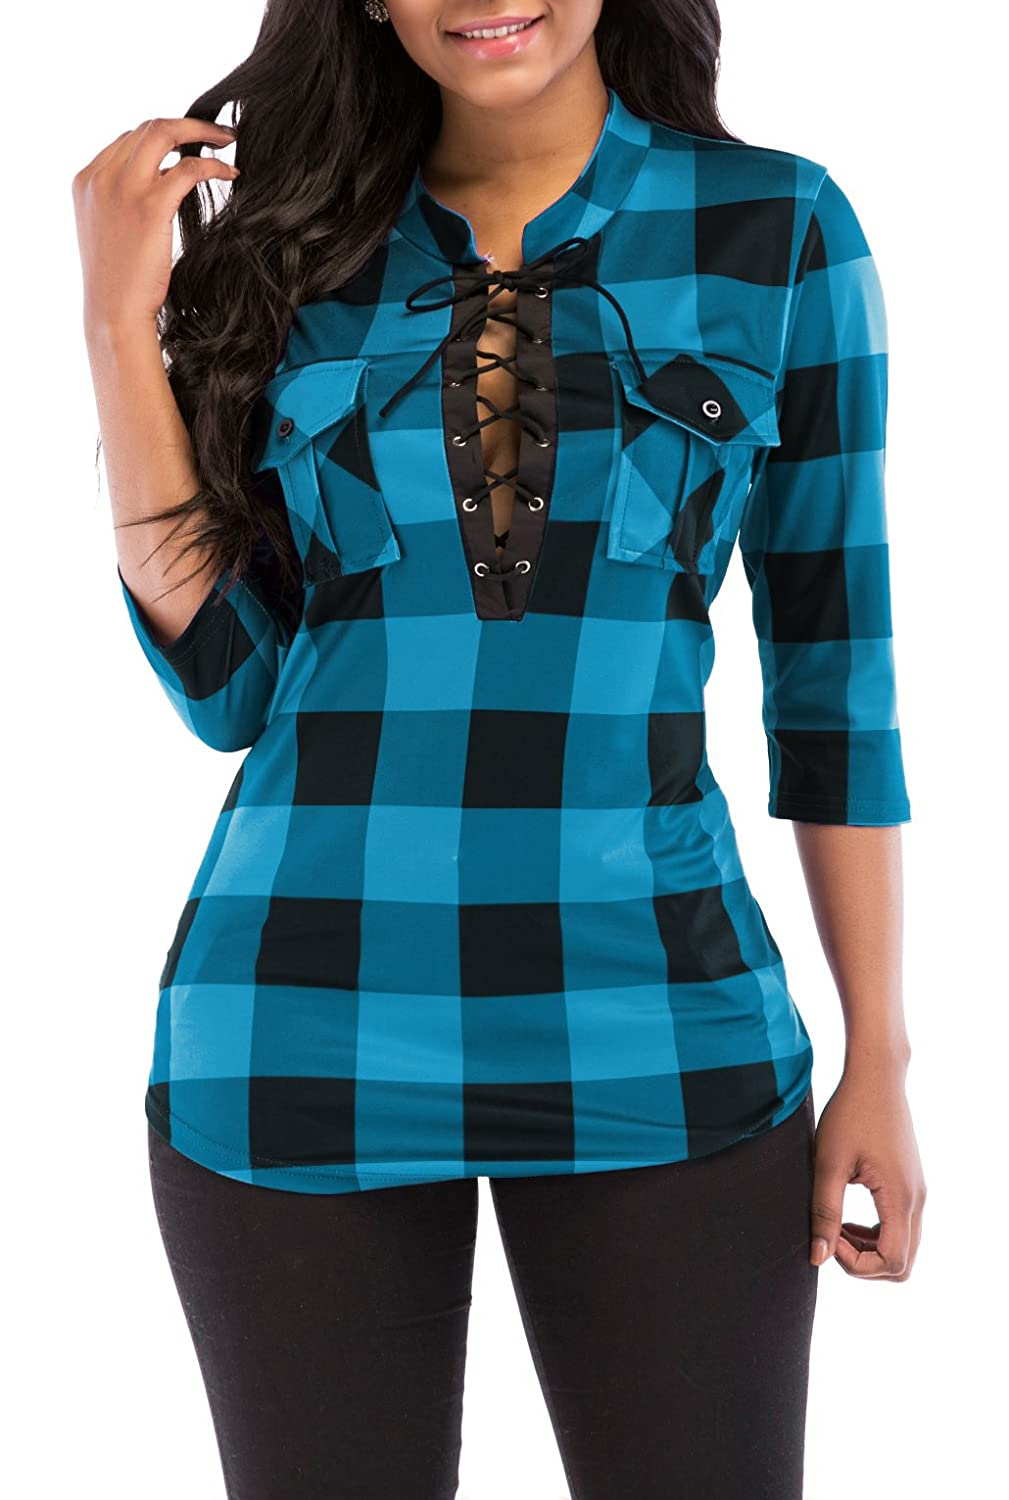 Dark Green KISSMODA Women's Sexy Fitted Plaid Shirt 3 4 Sleeves Blouses V Neck Tie Front Tops with Pockets